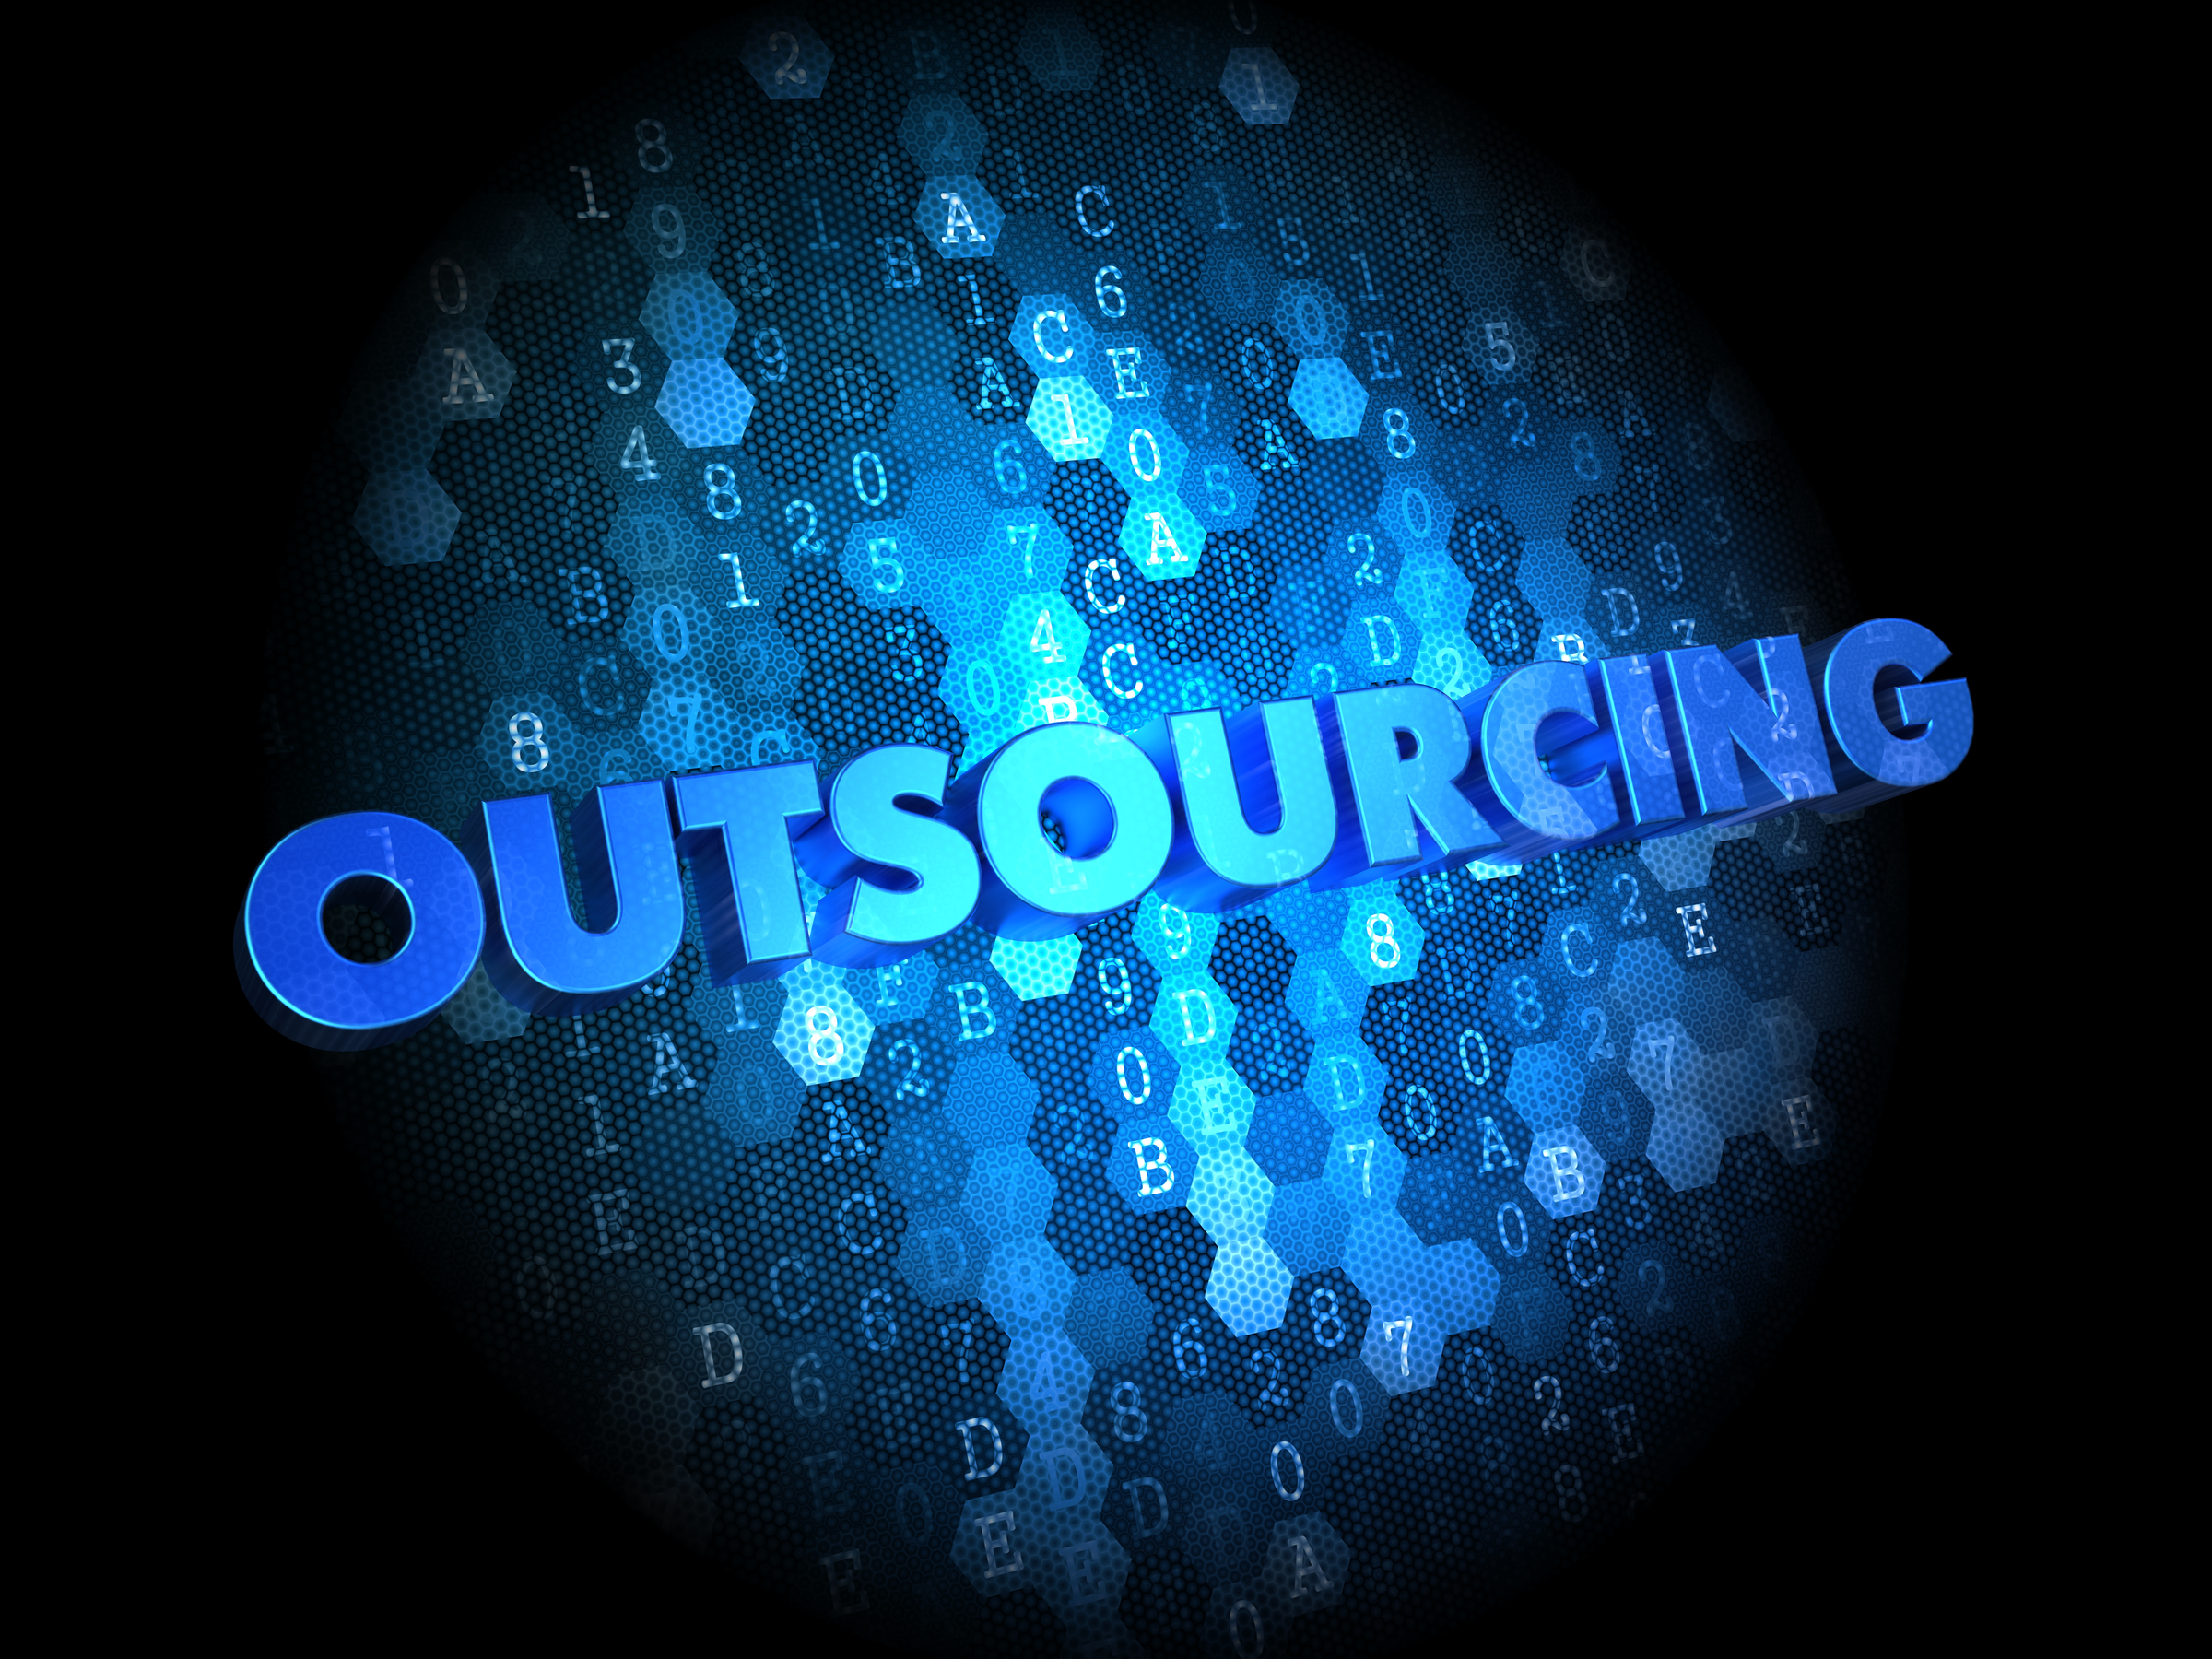 Just Simply Outsourcing